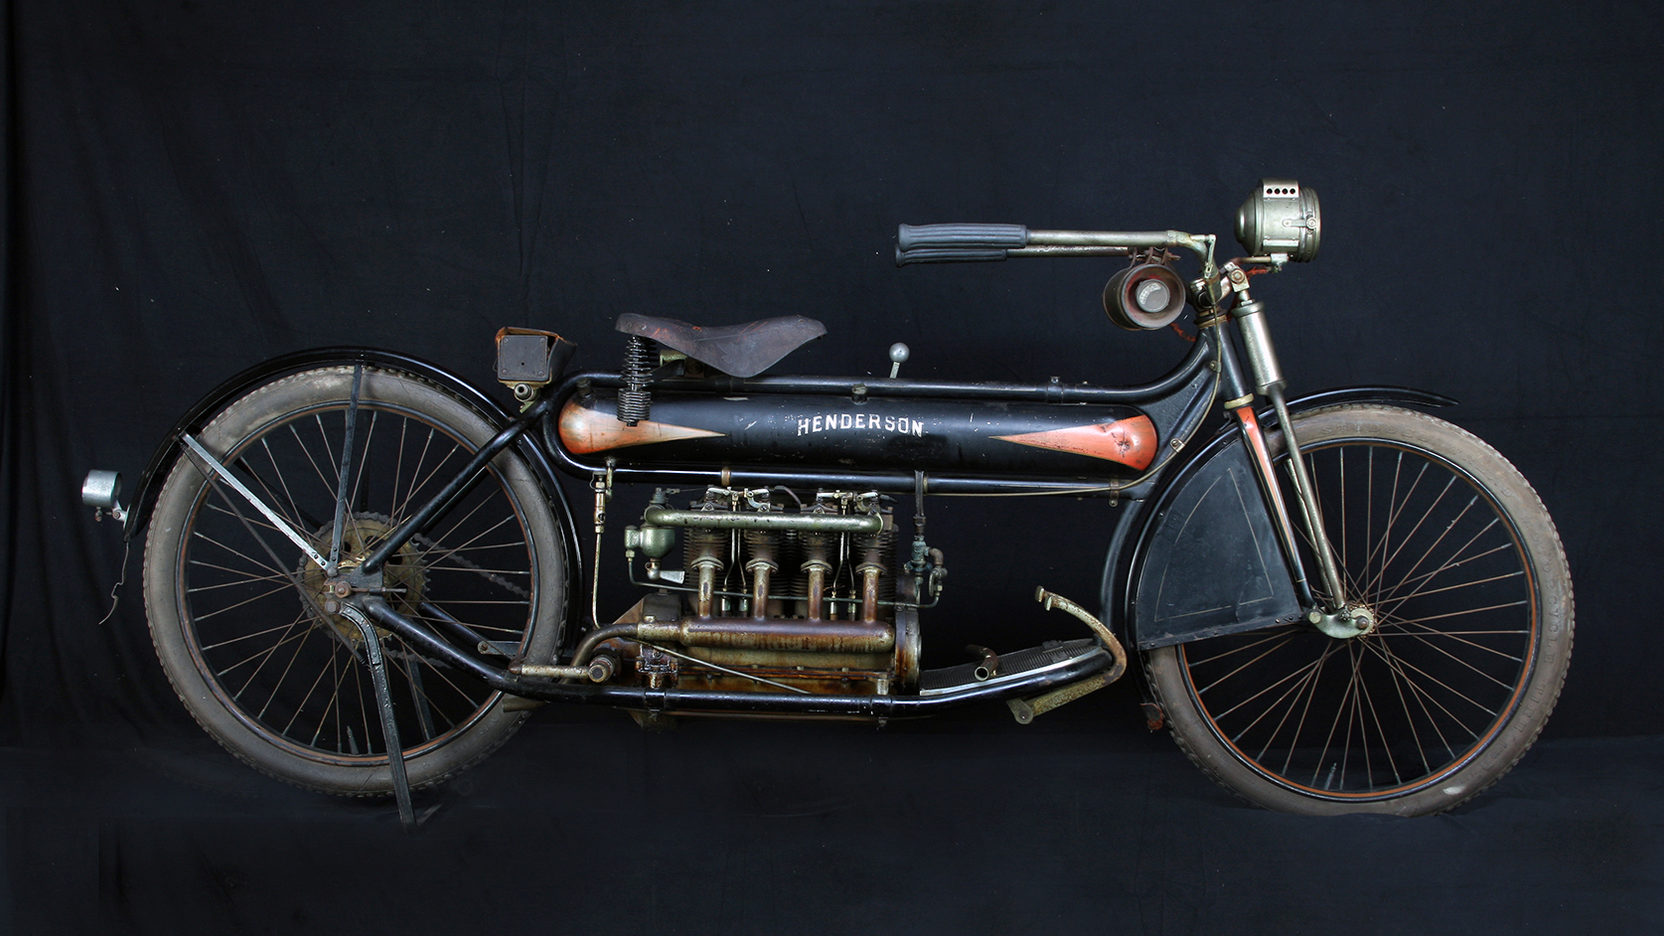 This completely original 1912 Henderson Four has not been restored so it has its original paint job. (Picture courtesy Mecum Auctions).